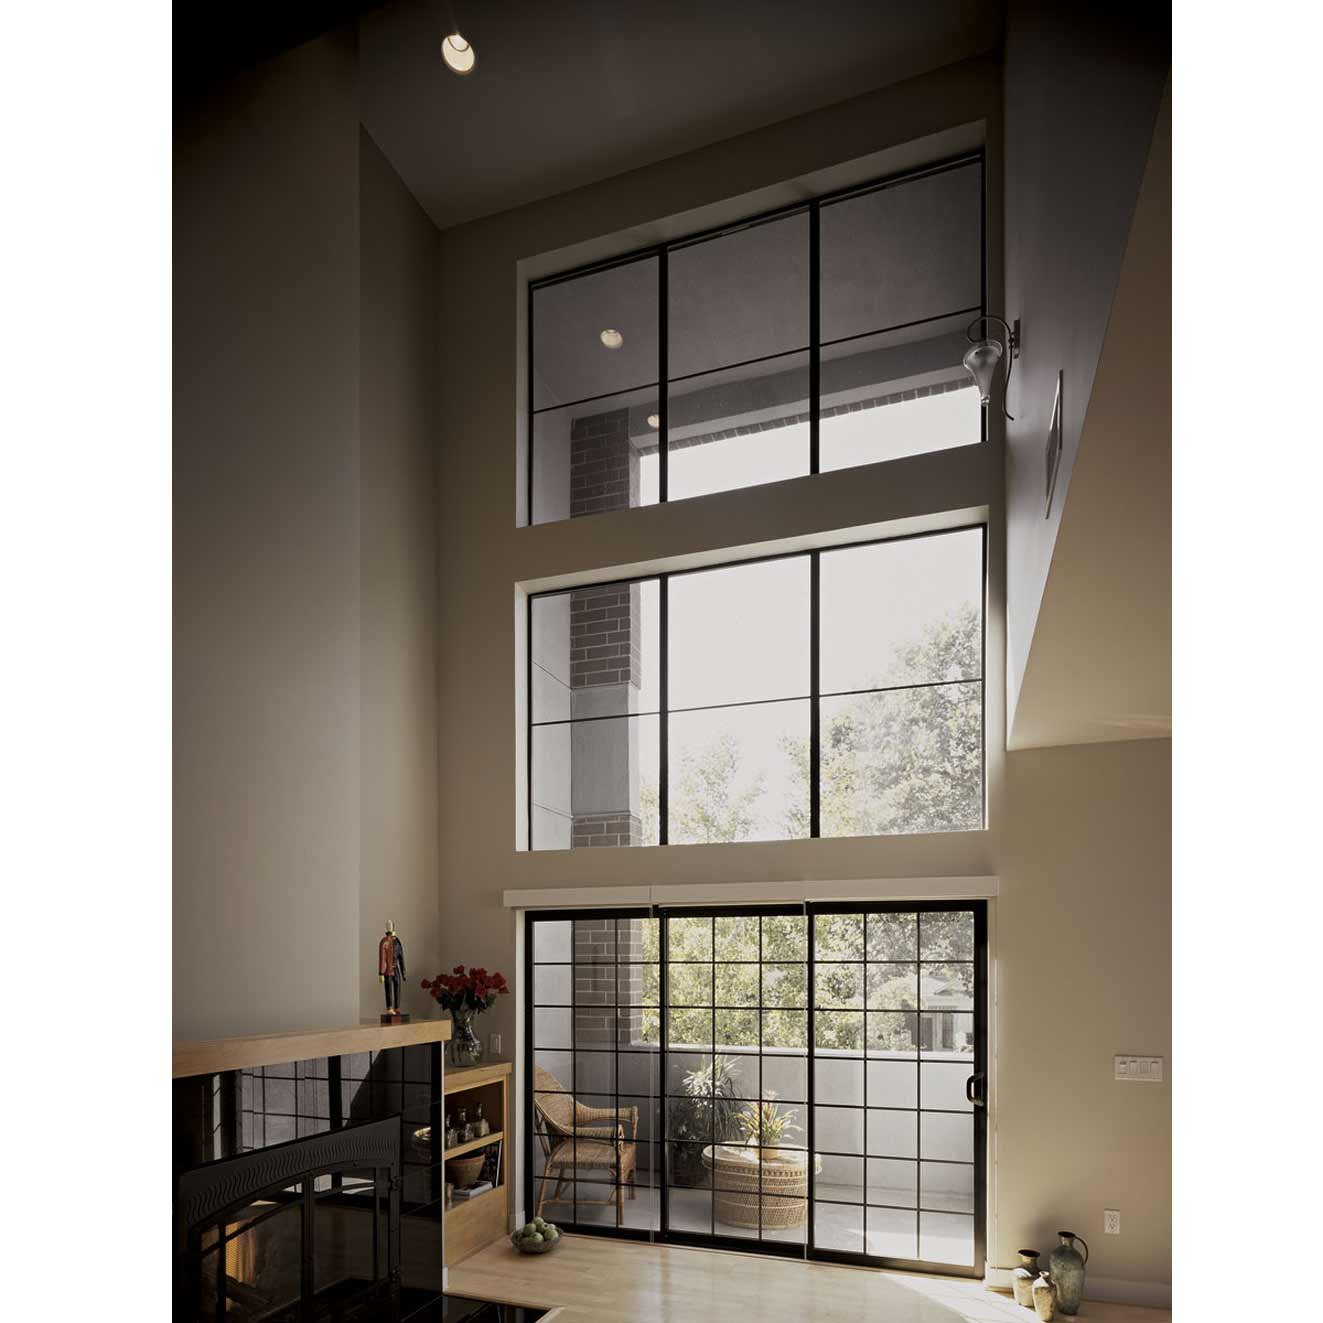 Best Windows for Homes Criteria | Feel The Home